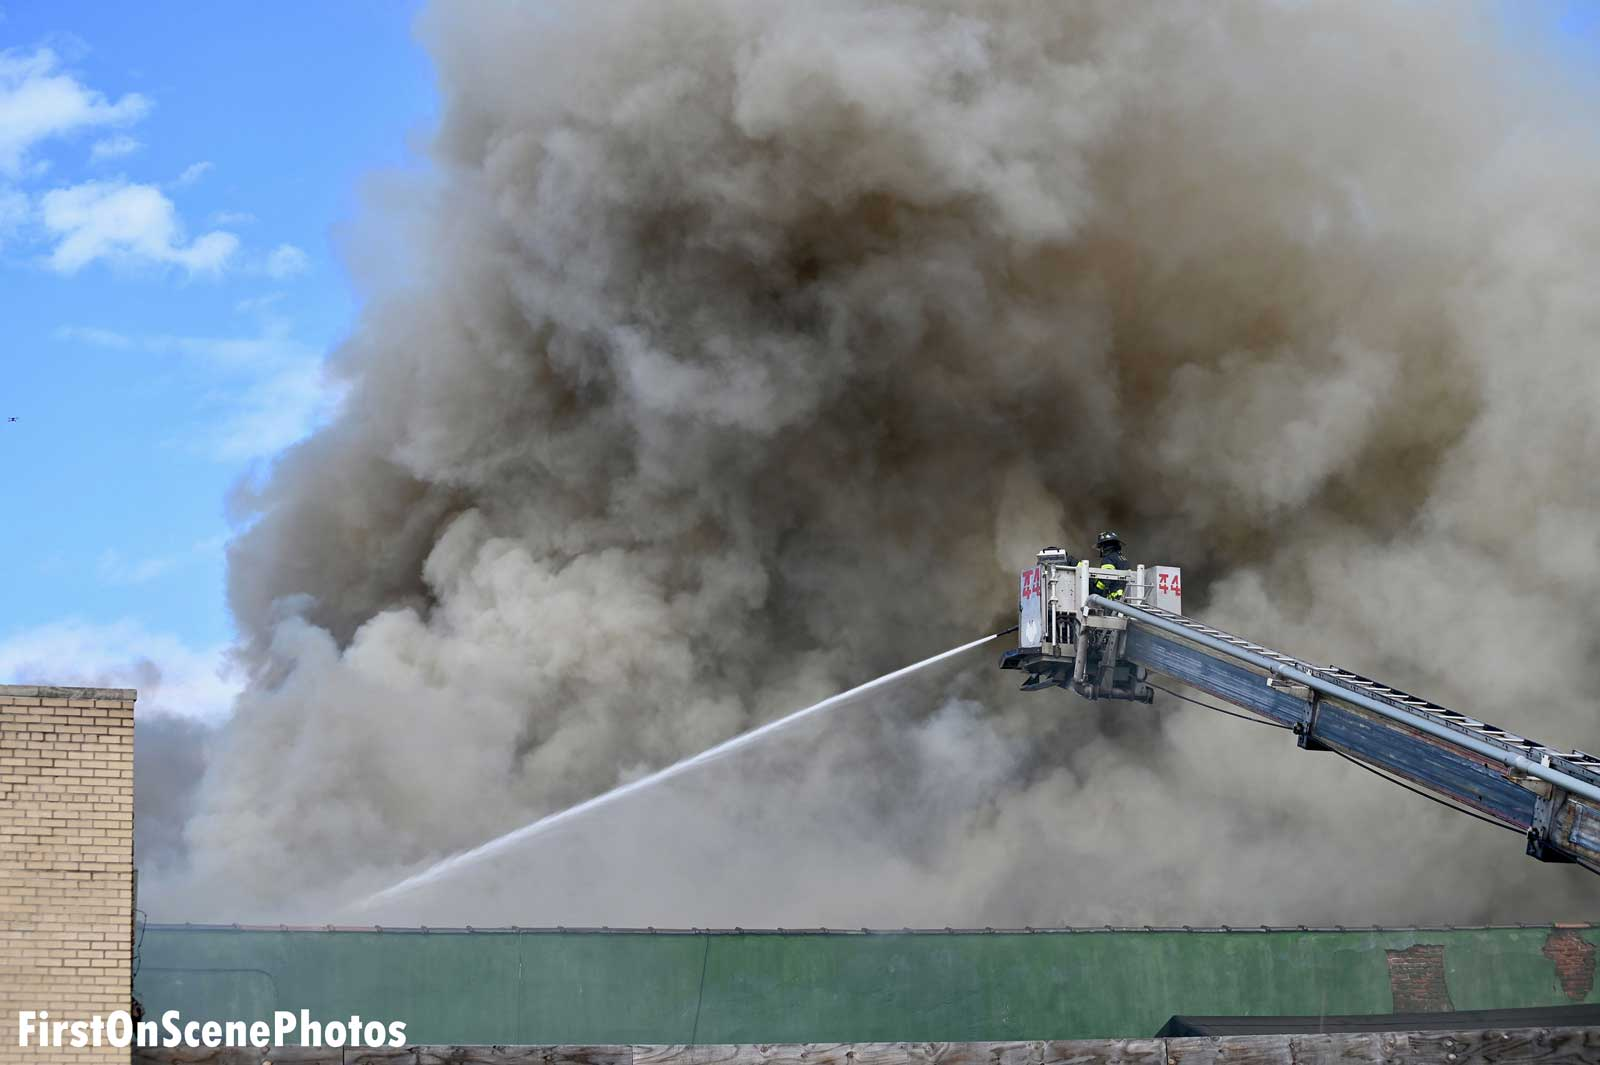 A firefighter in a tower ladder bucket trains a water stream on the fire building